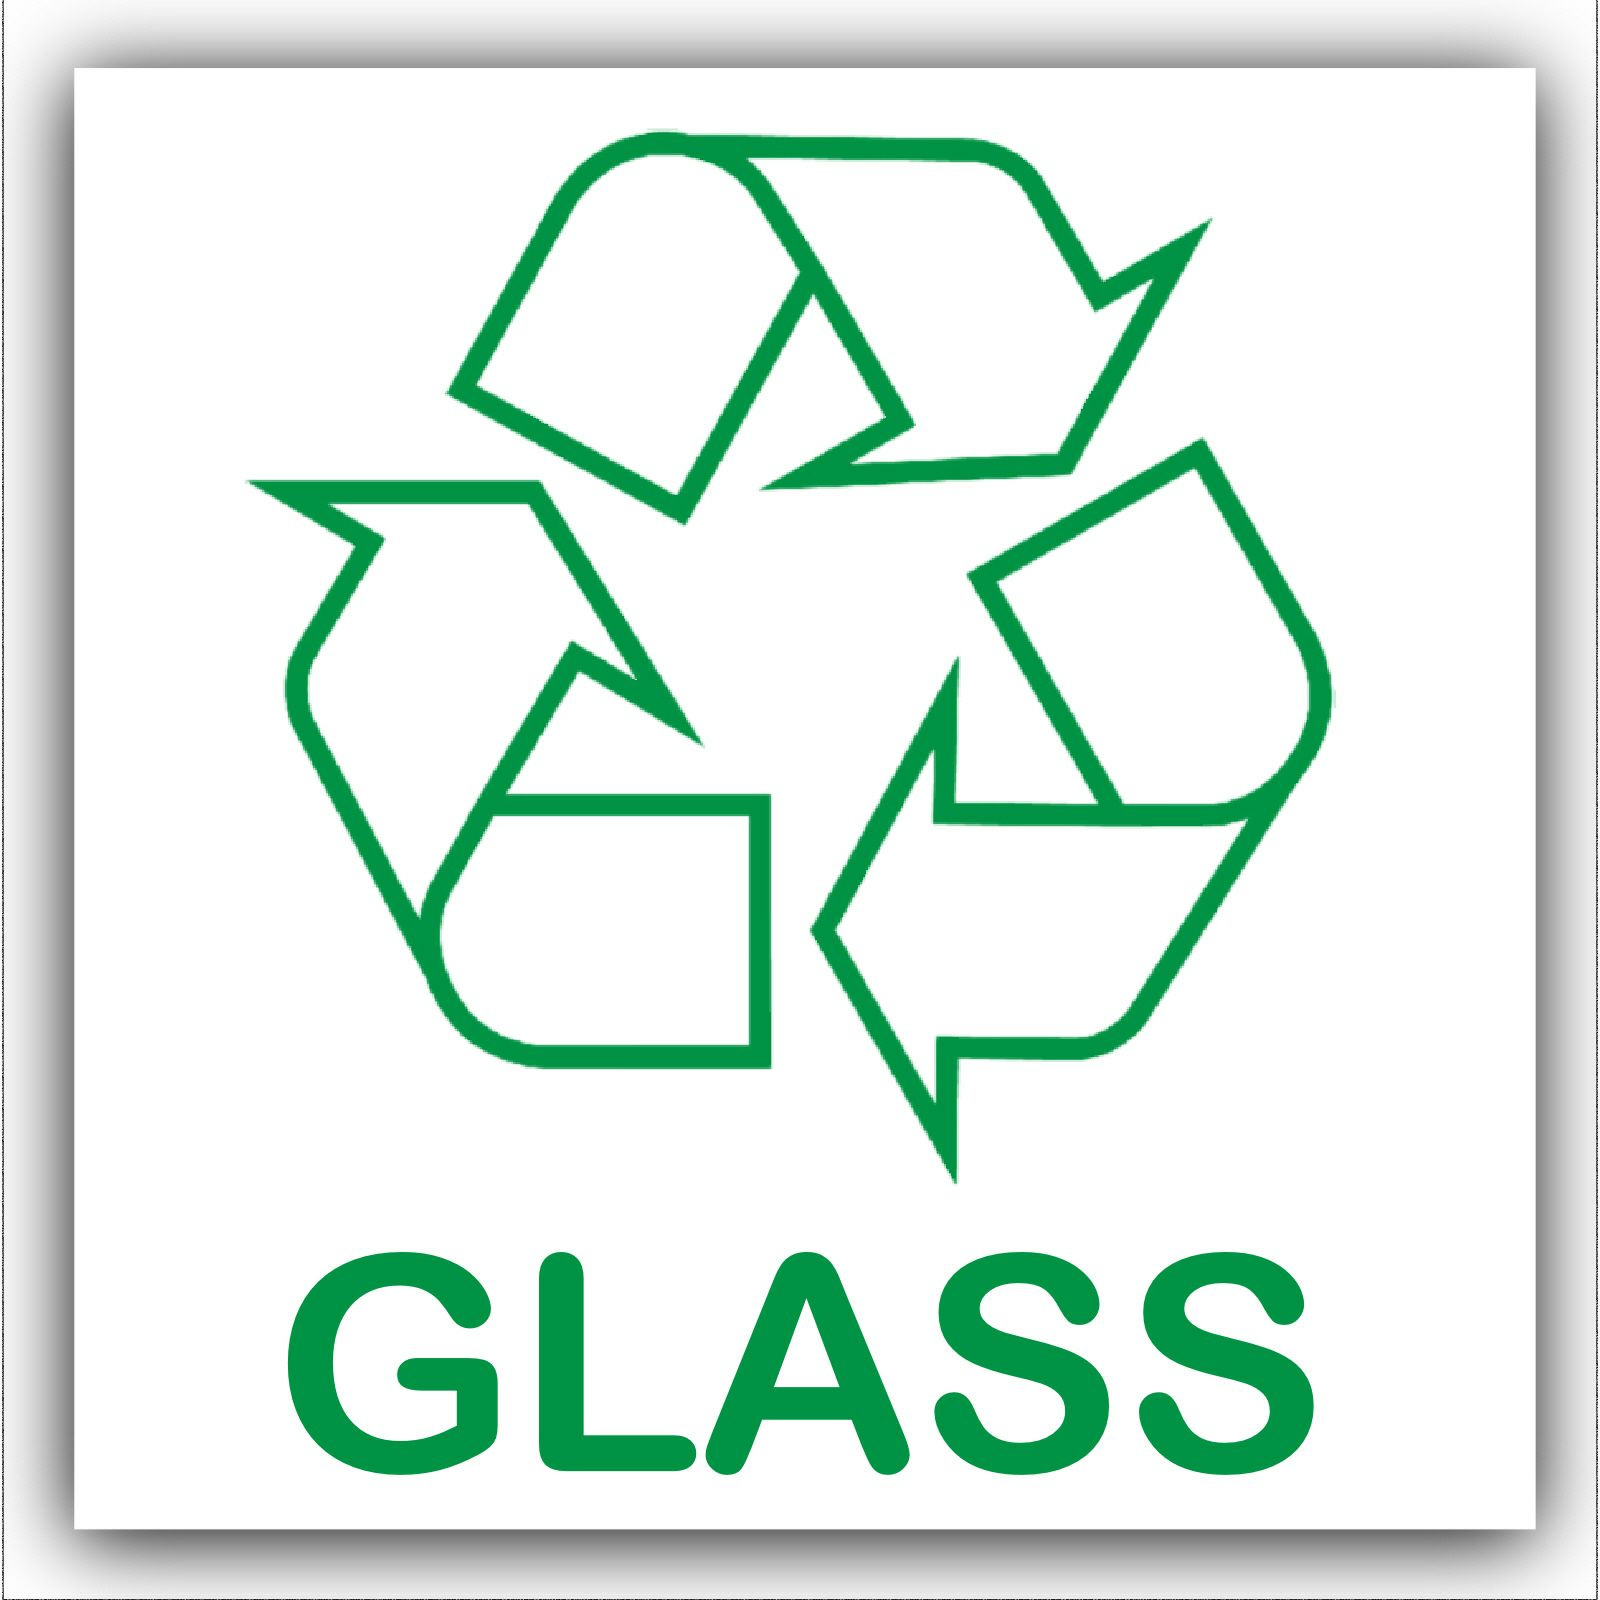 1 X Glass Recycling Bin Adhesive Sticker Recycle Logo Sign